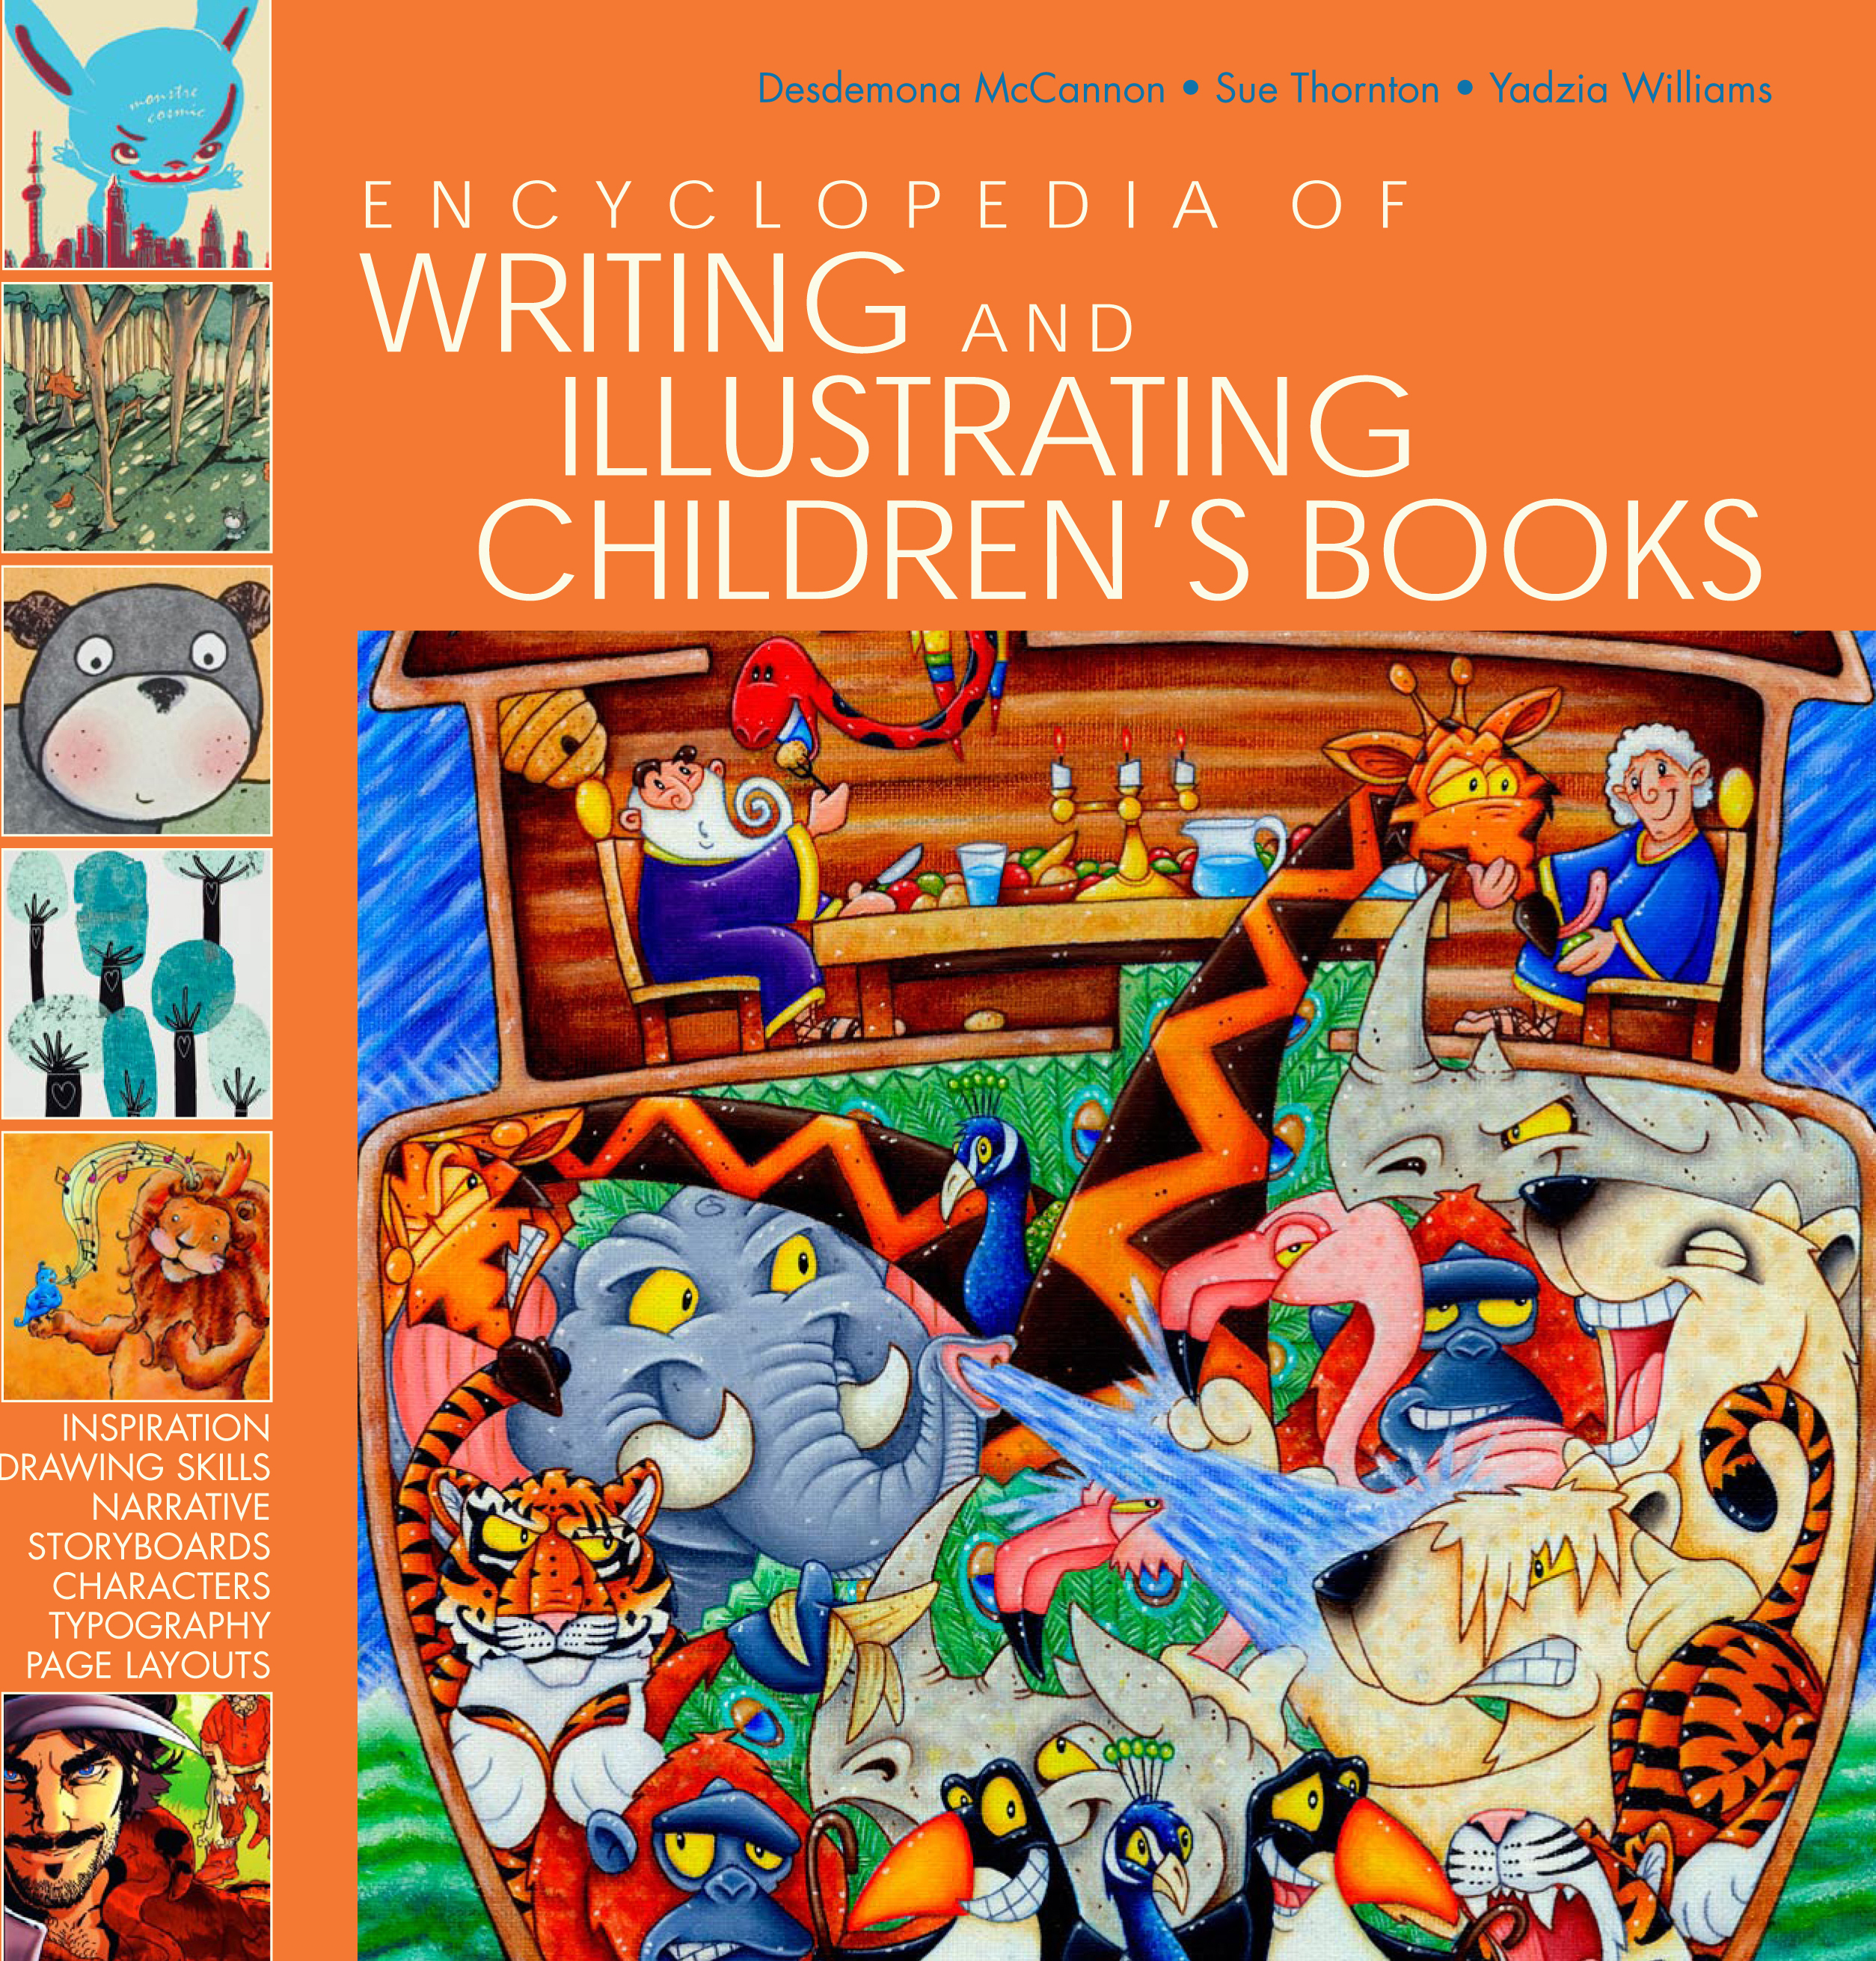 The Encyclopedia of Writing and Illustrating Children's Books - Desdemona McCannon Sue Thornton